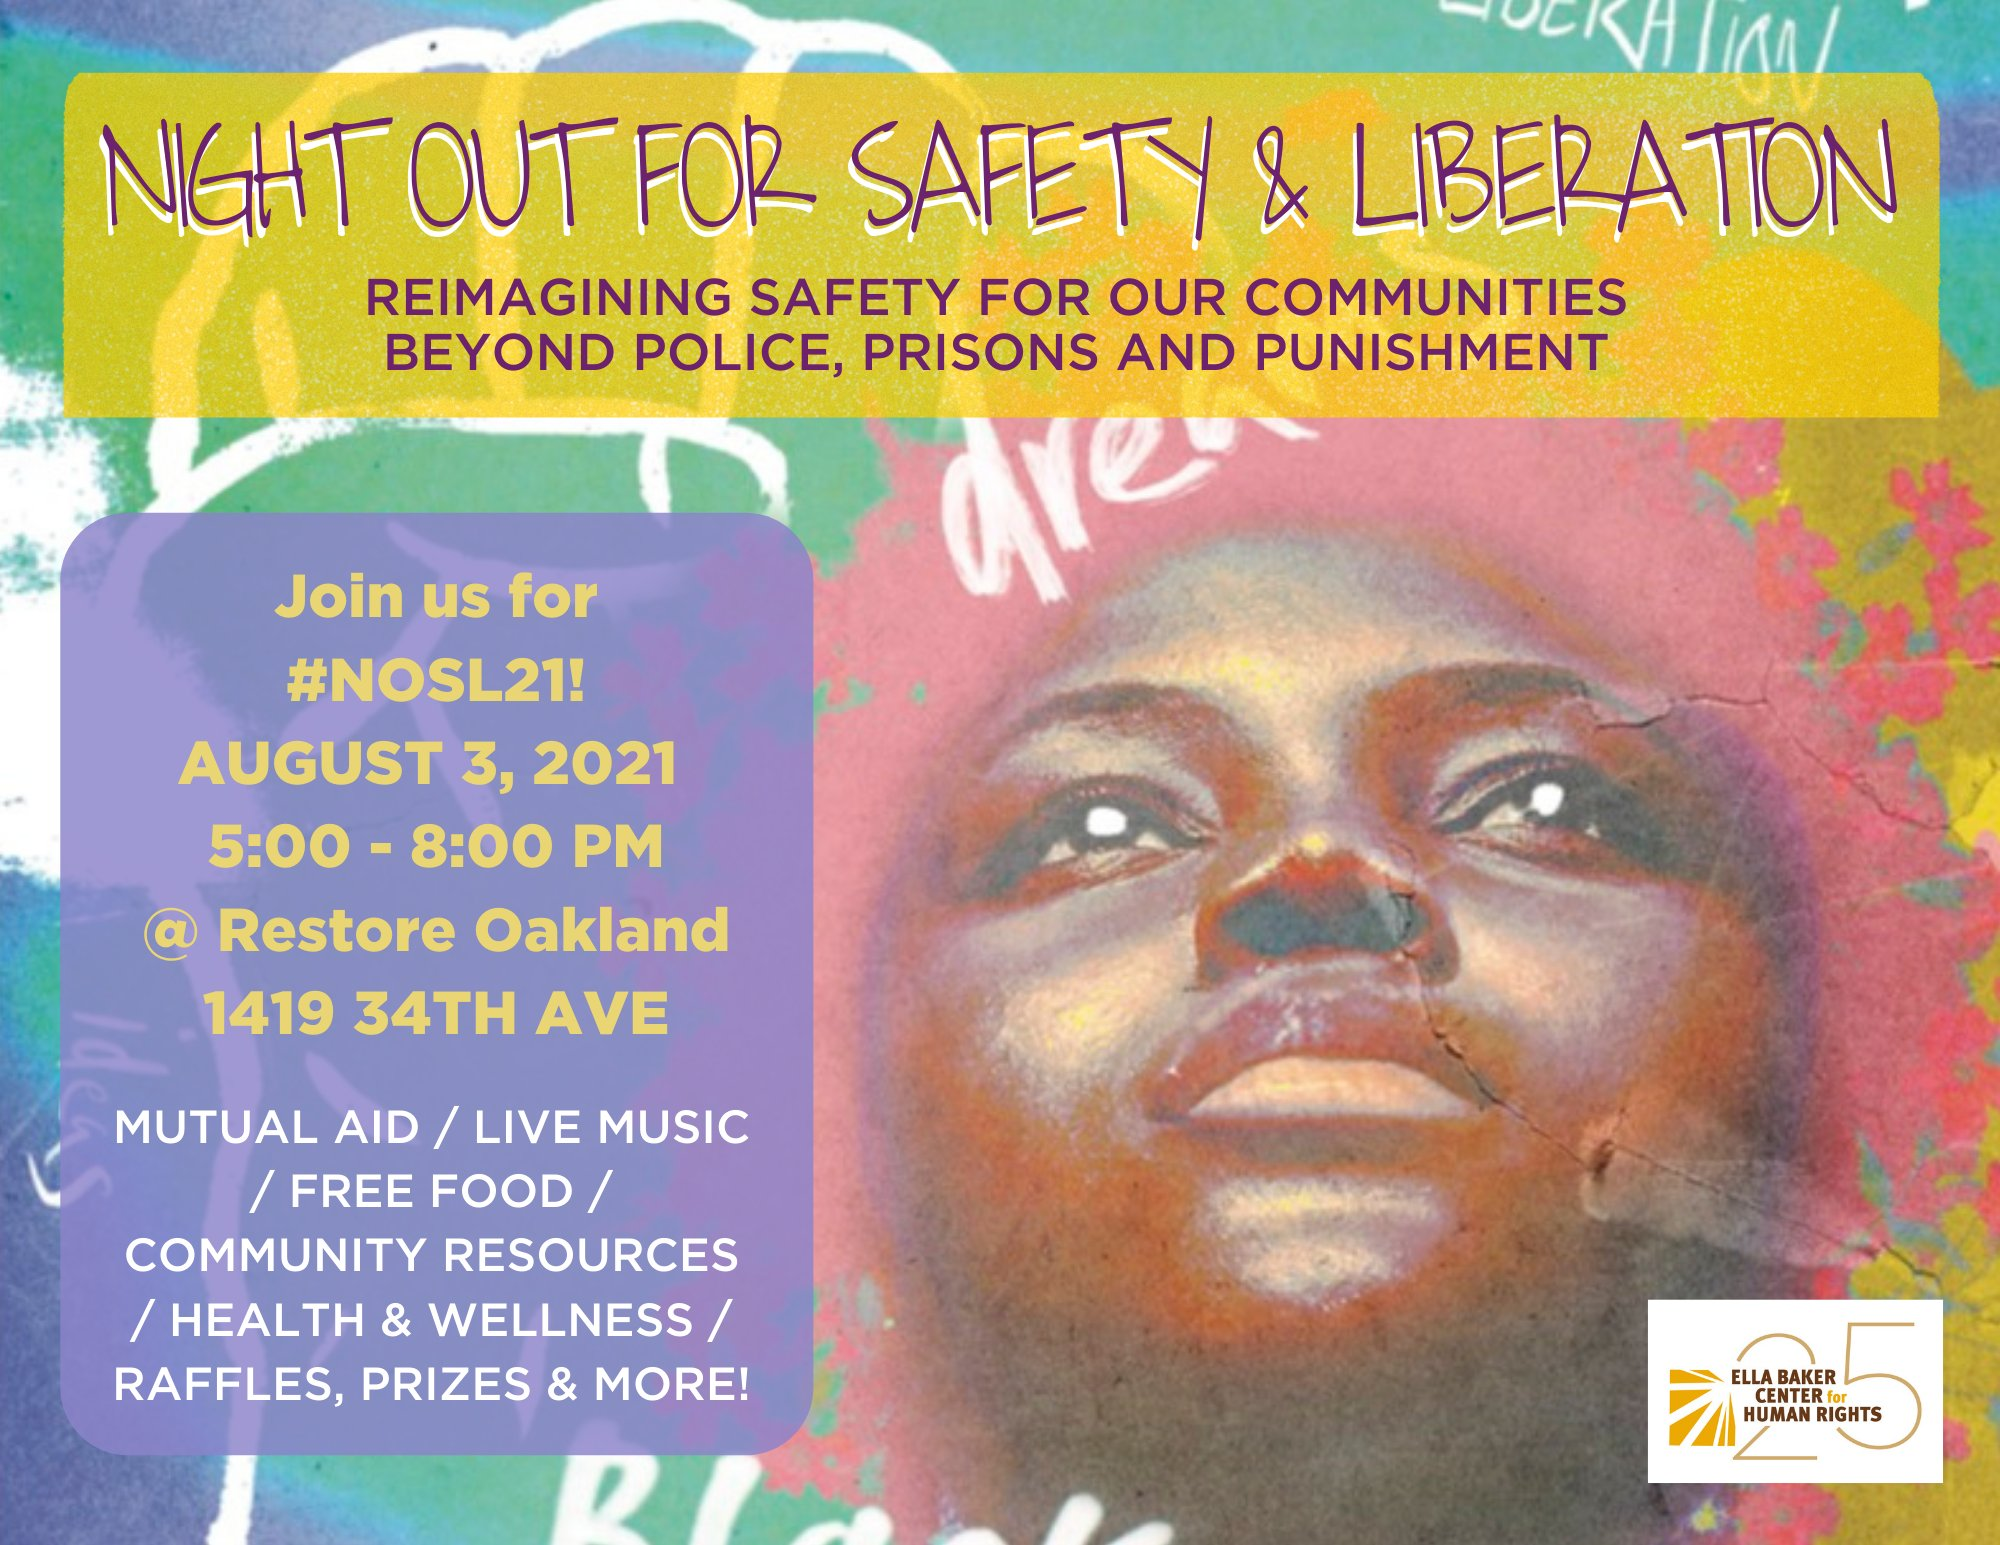 Night Out for Safety & Liberation @ Restore Oakland